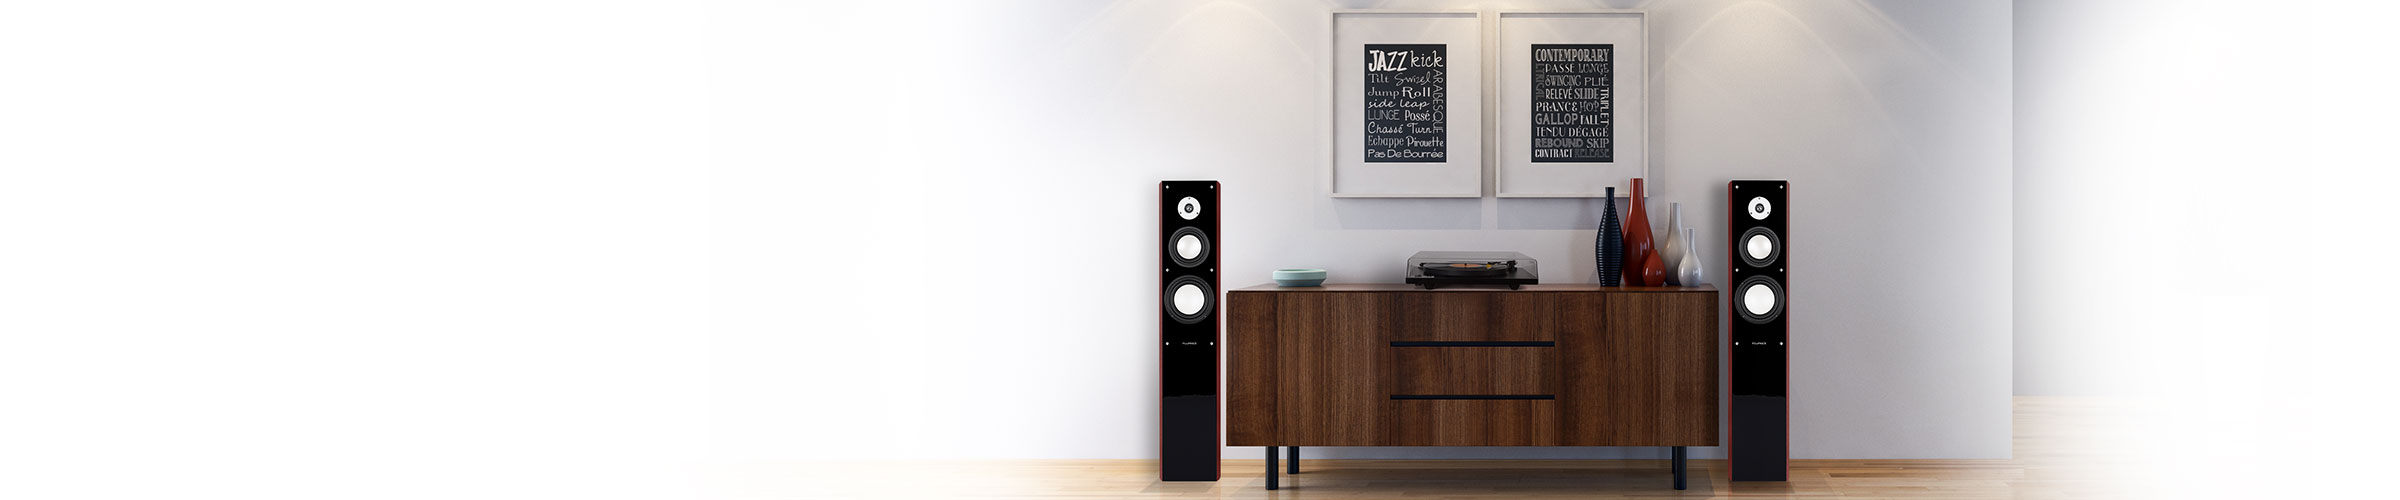 XL5 Floorstanding Speakers